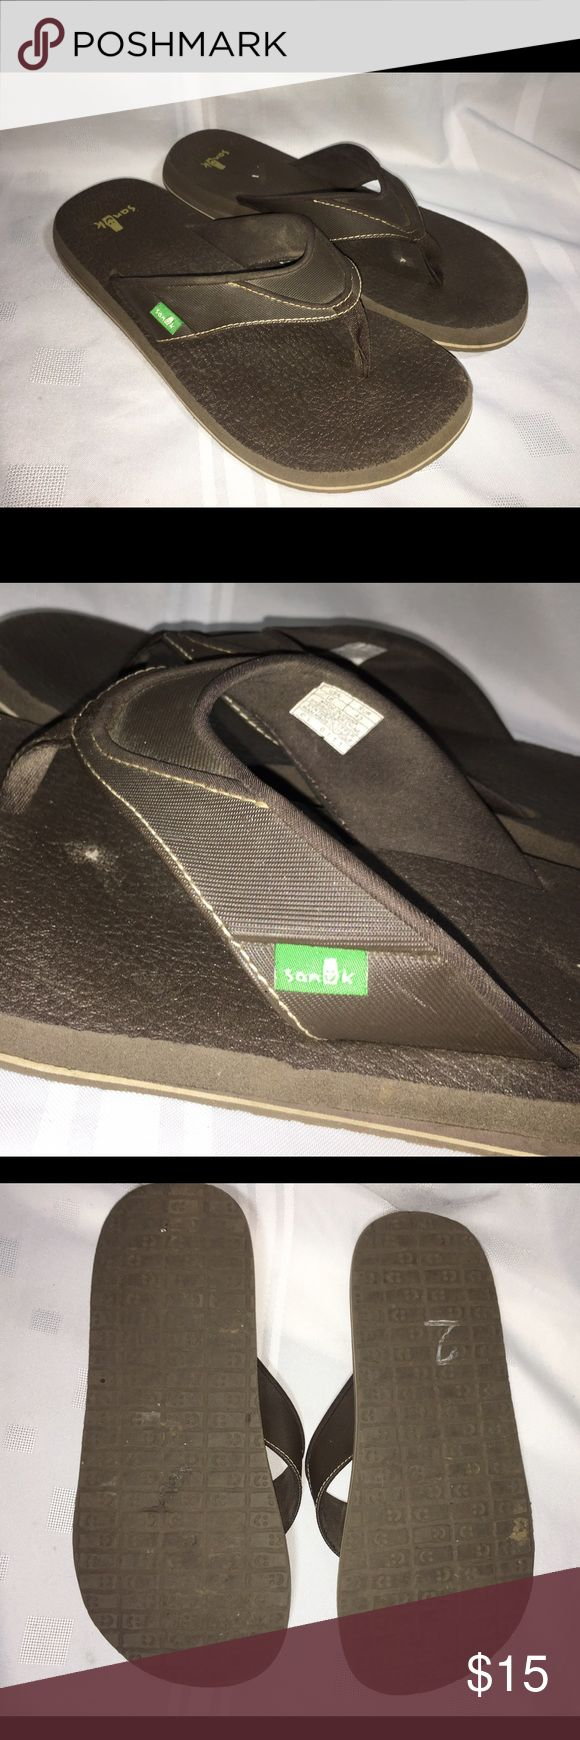 Sanuk flip flop sandals Excellent - gently worn , a few spots here and there on interior Sanuk Shoes Sandals & Flip-Flops